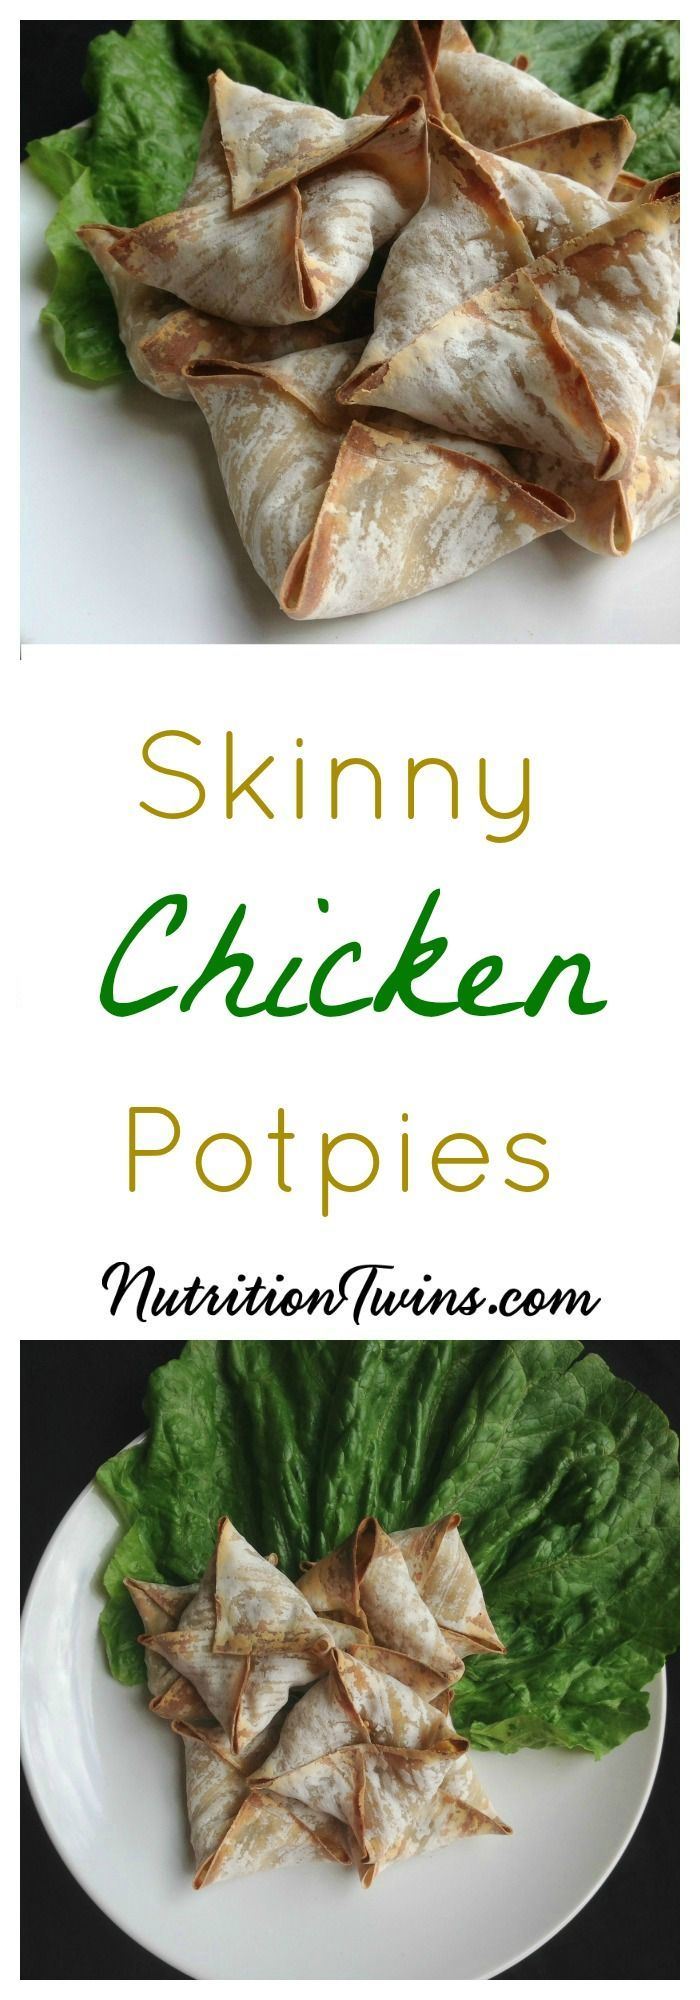 #wwwnutritiontwinscom #newsletter #guiltfree #satiating #nutrition #calories #comfort #fitness #reci...